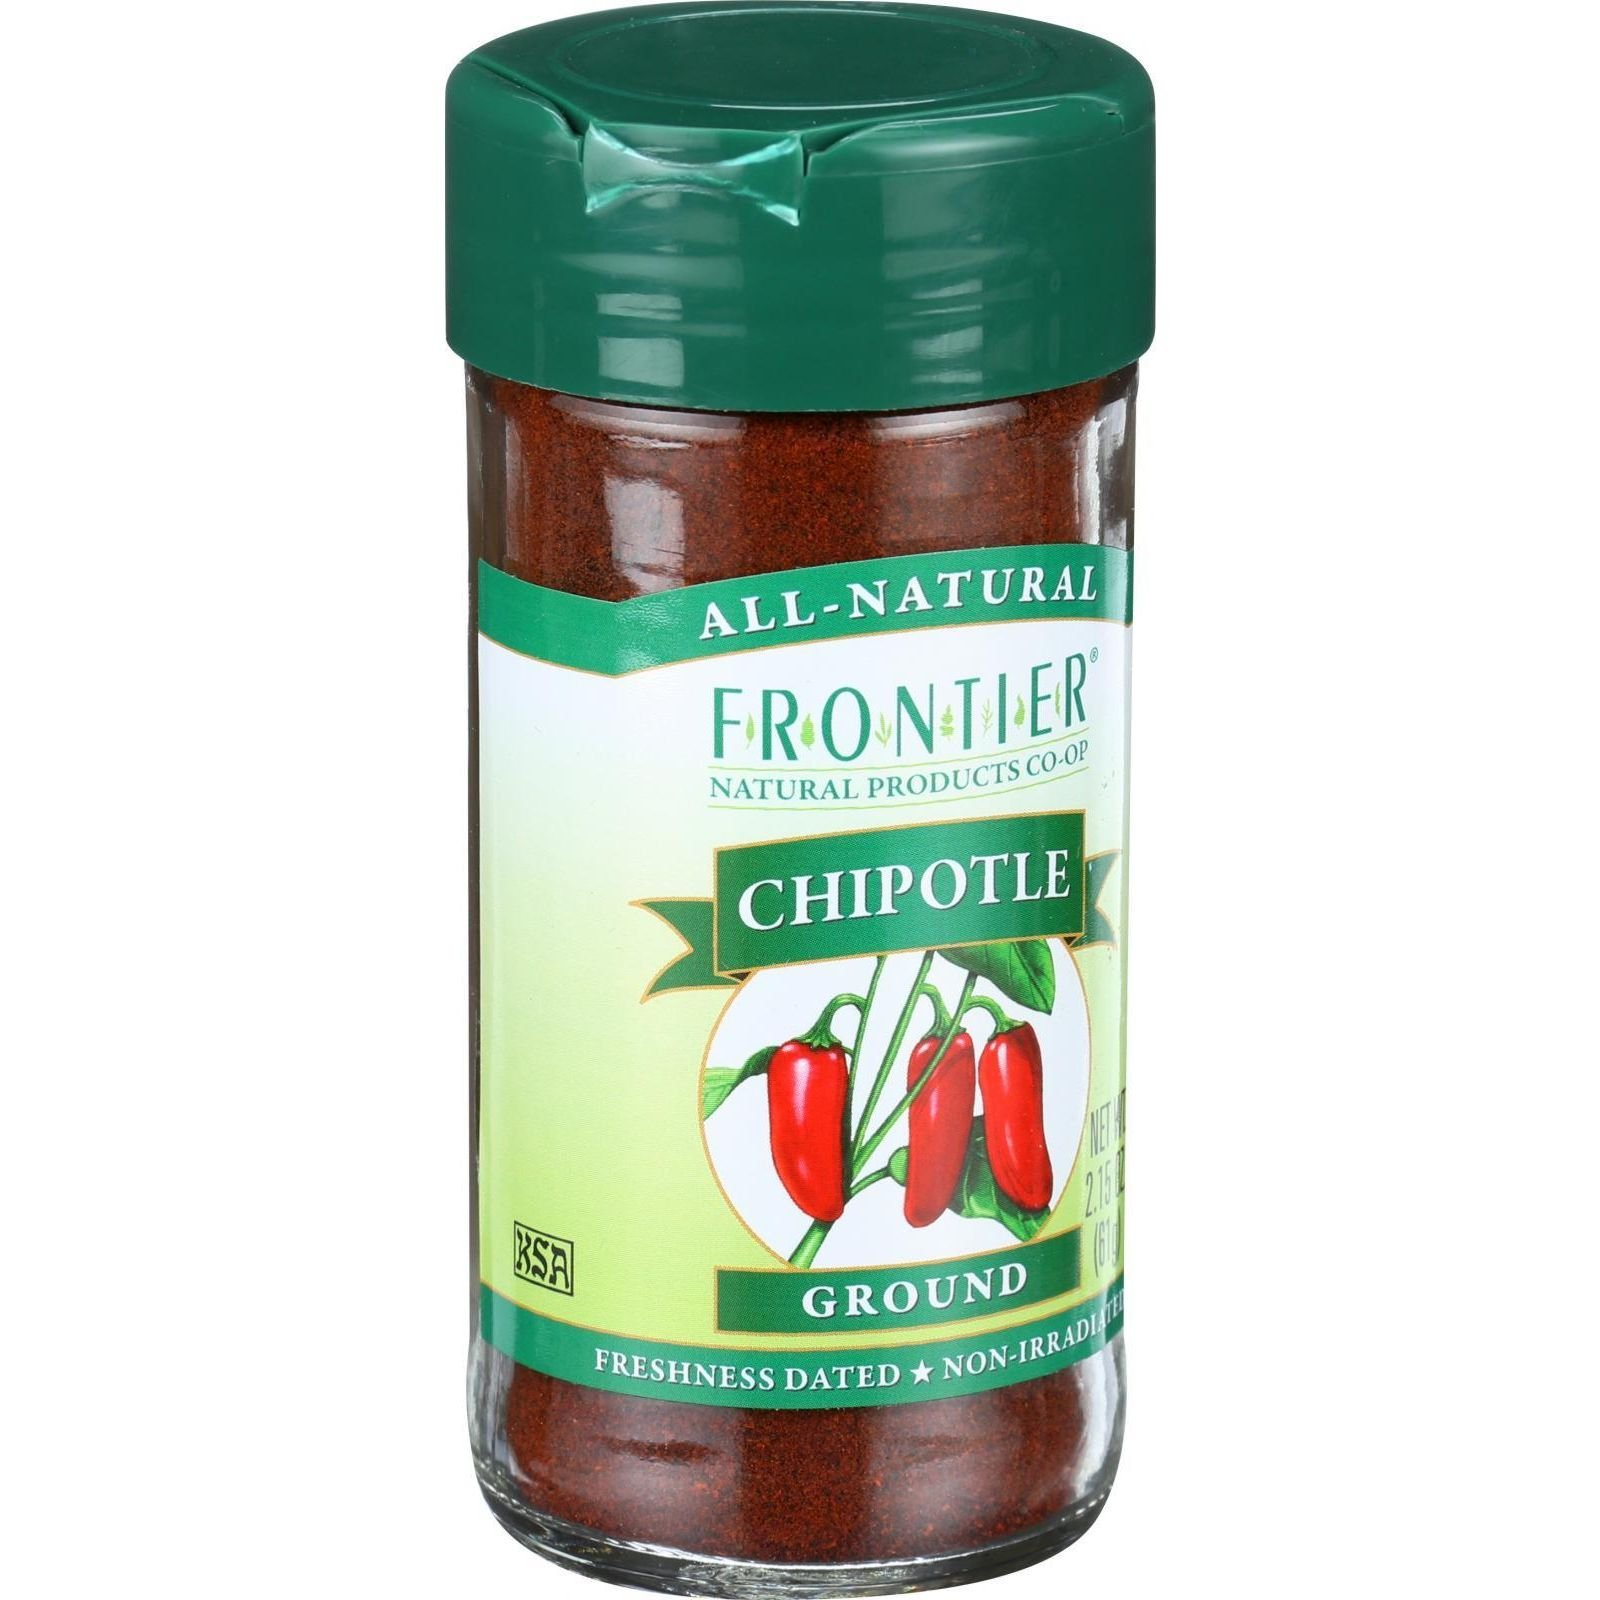 Frontier Herb - Ground chipotle smoked jalapeno - 2.15 oz - Gluten Free - Wheat Free - Kosher by Frontier (Image #1)